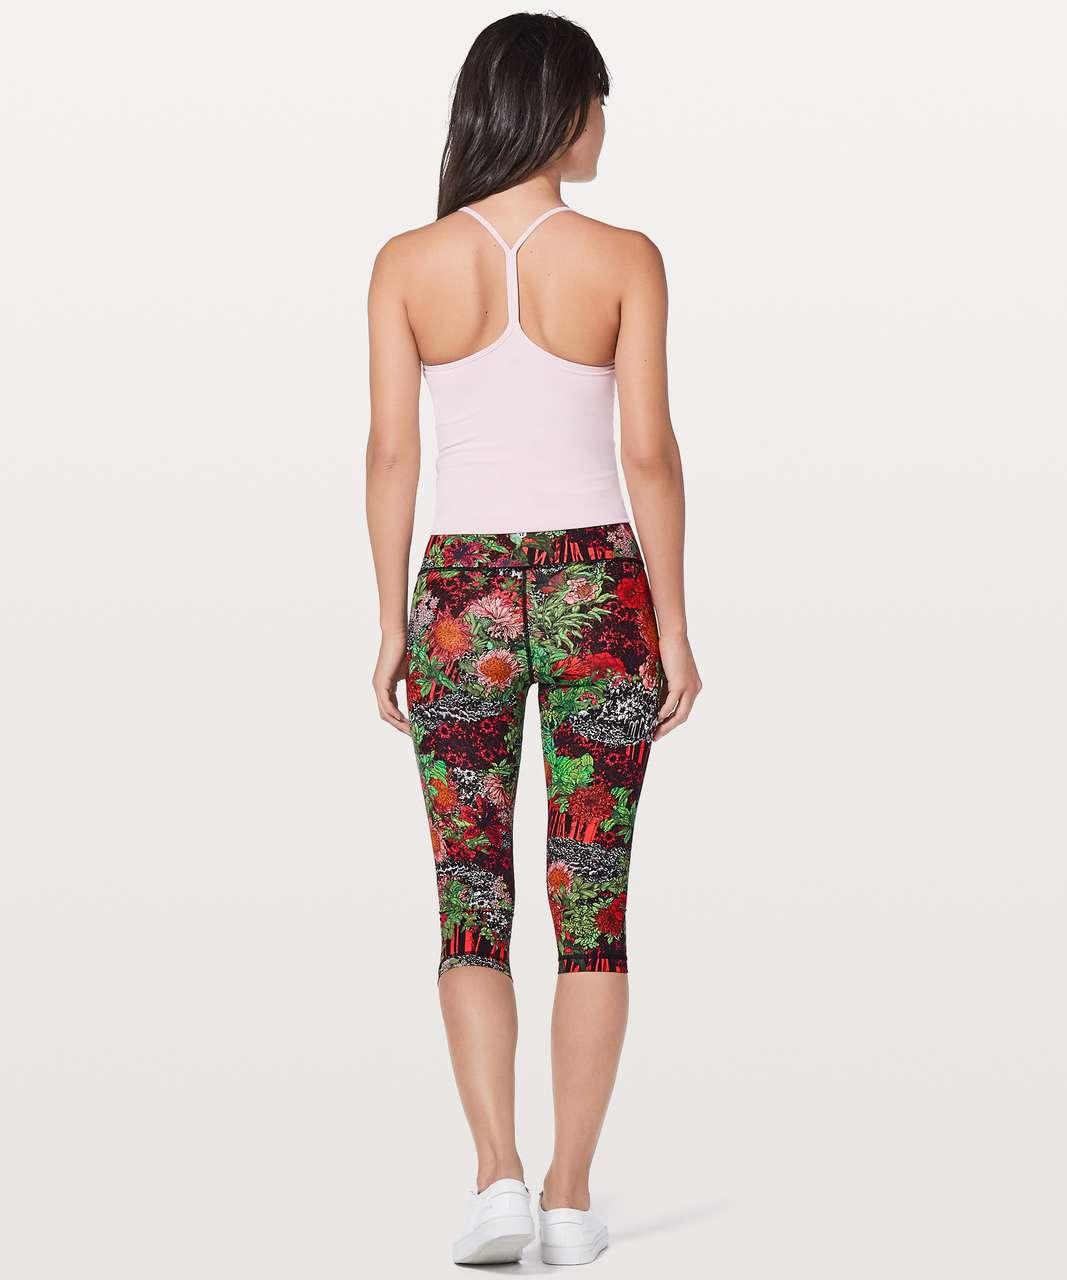 "Lululemon Wunder Under Hi-Rise 1/2 Tight 17"" - Zen Garden Multi"